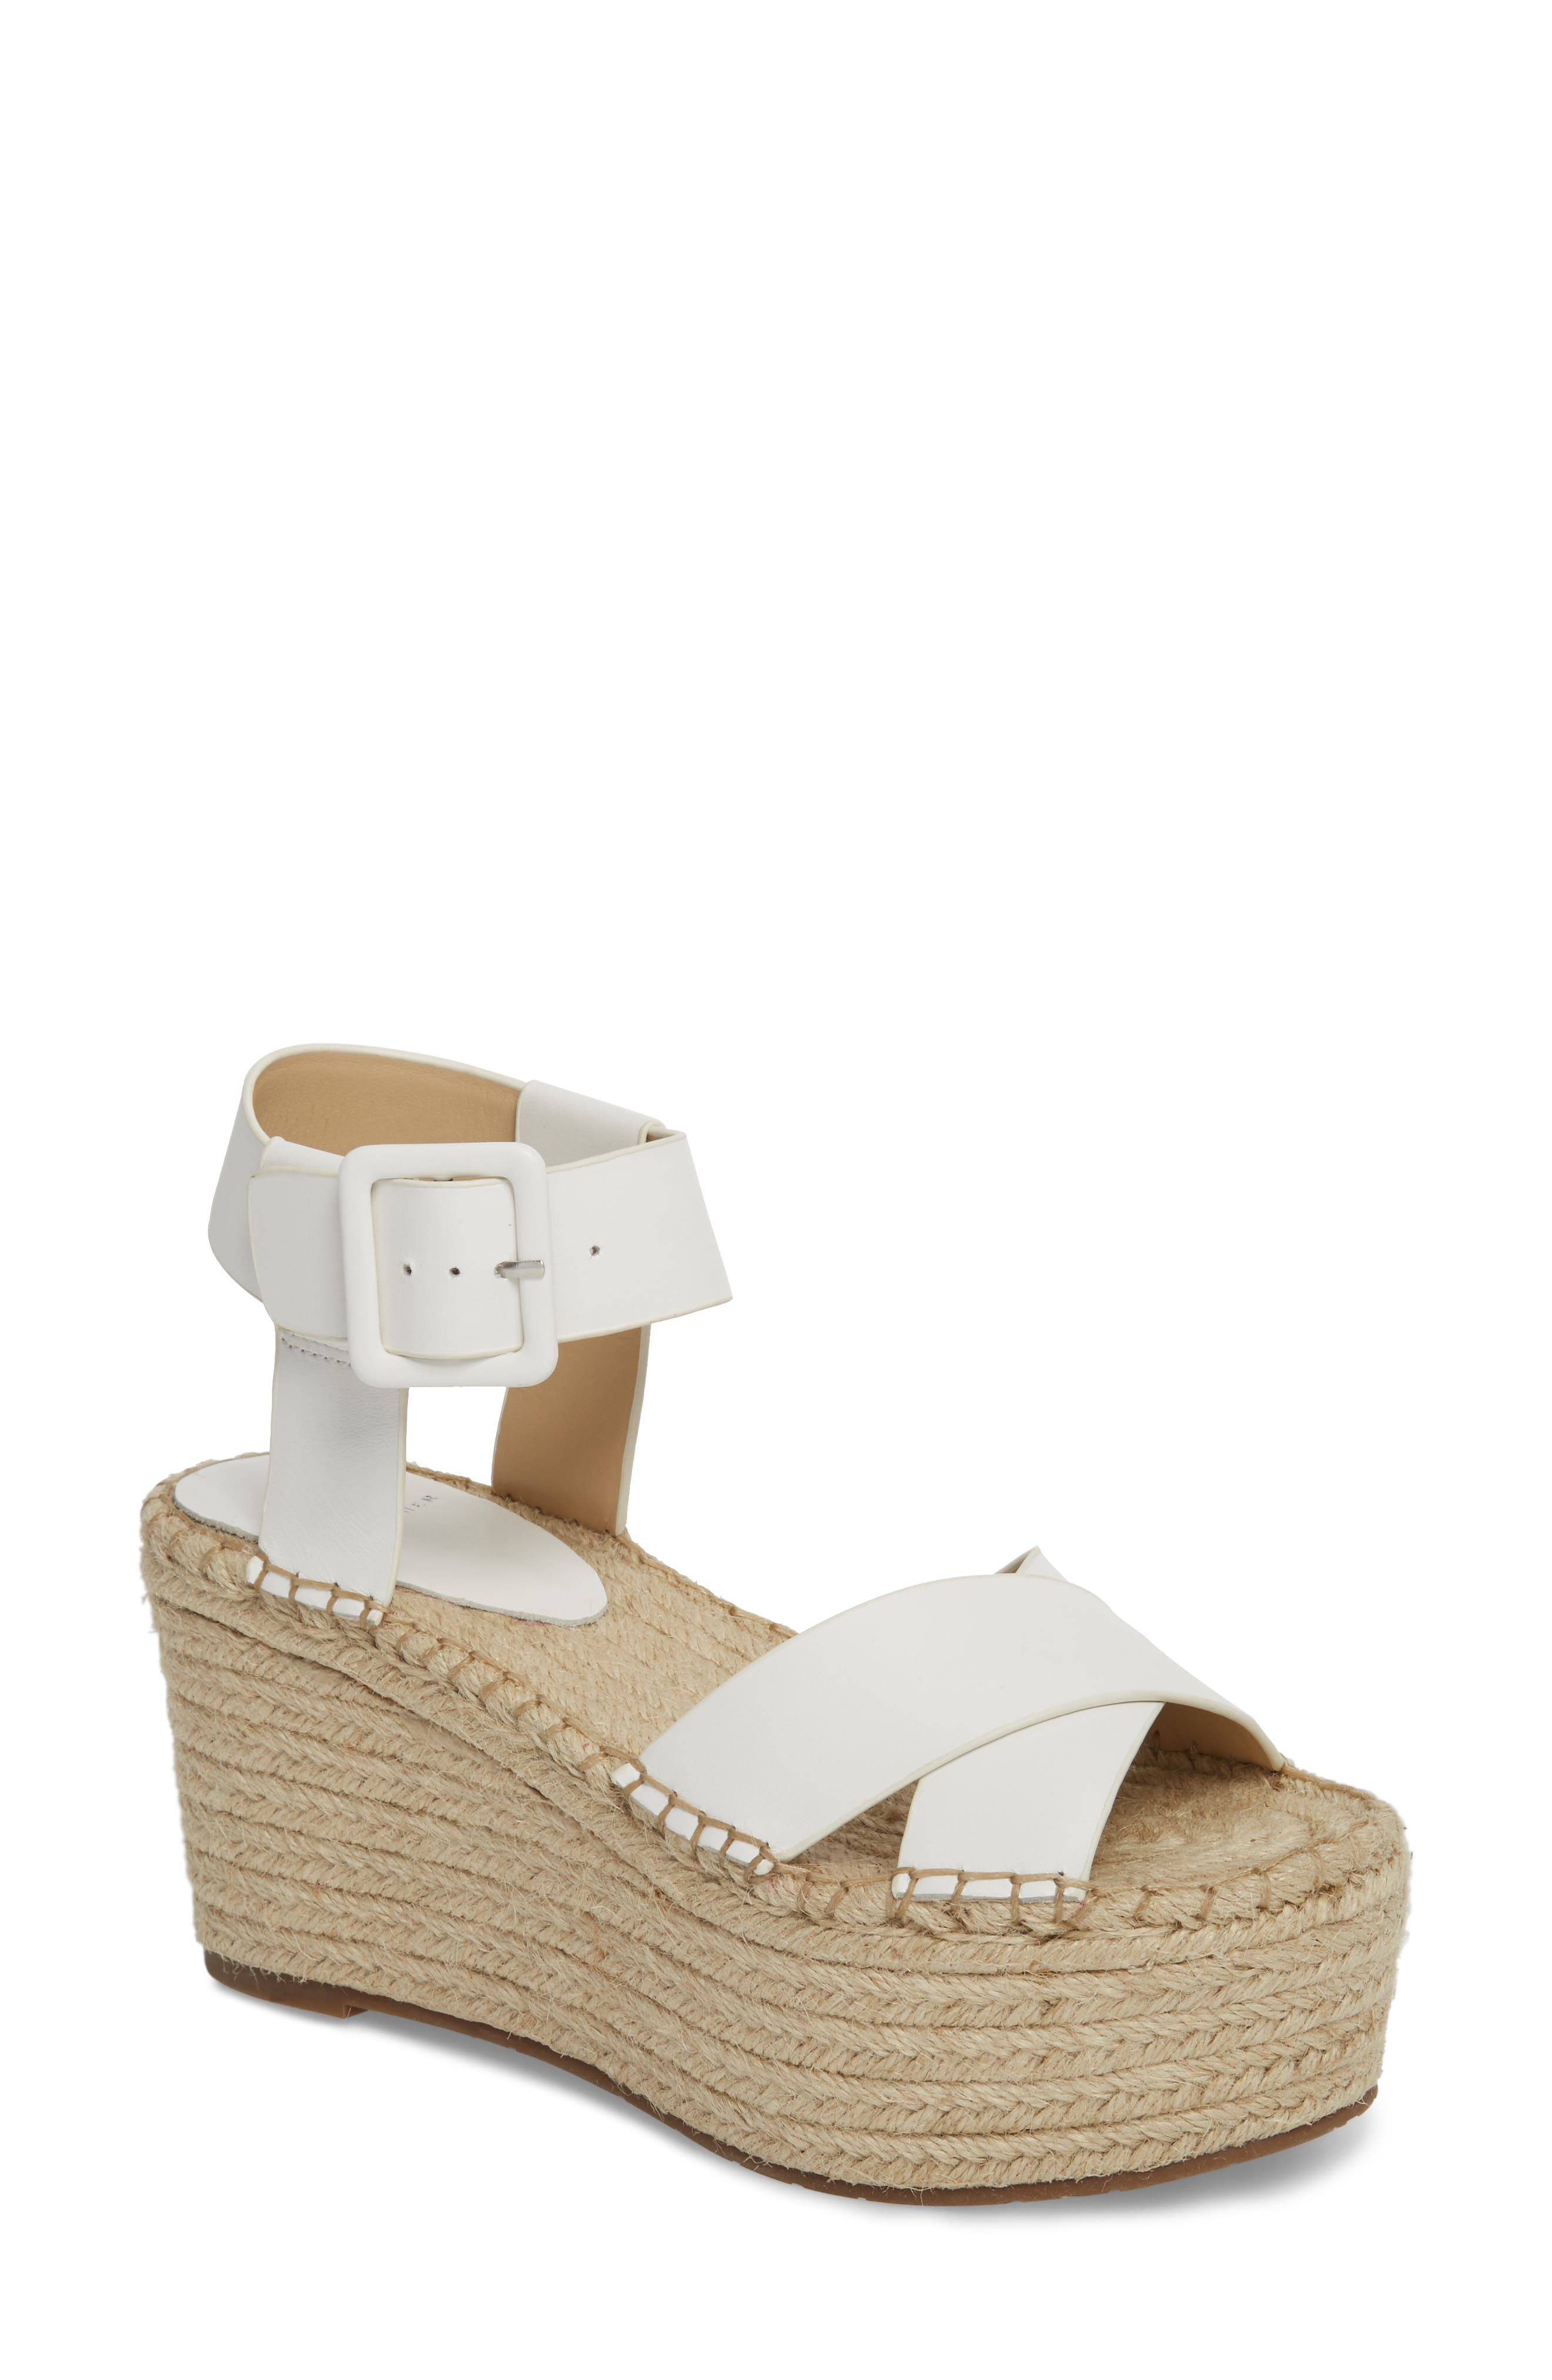 'Randall' Platform Wedge,                             Main thumbnail 1, color,                             112